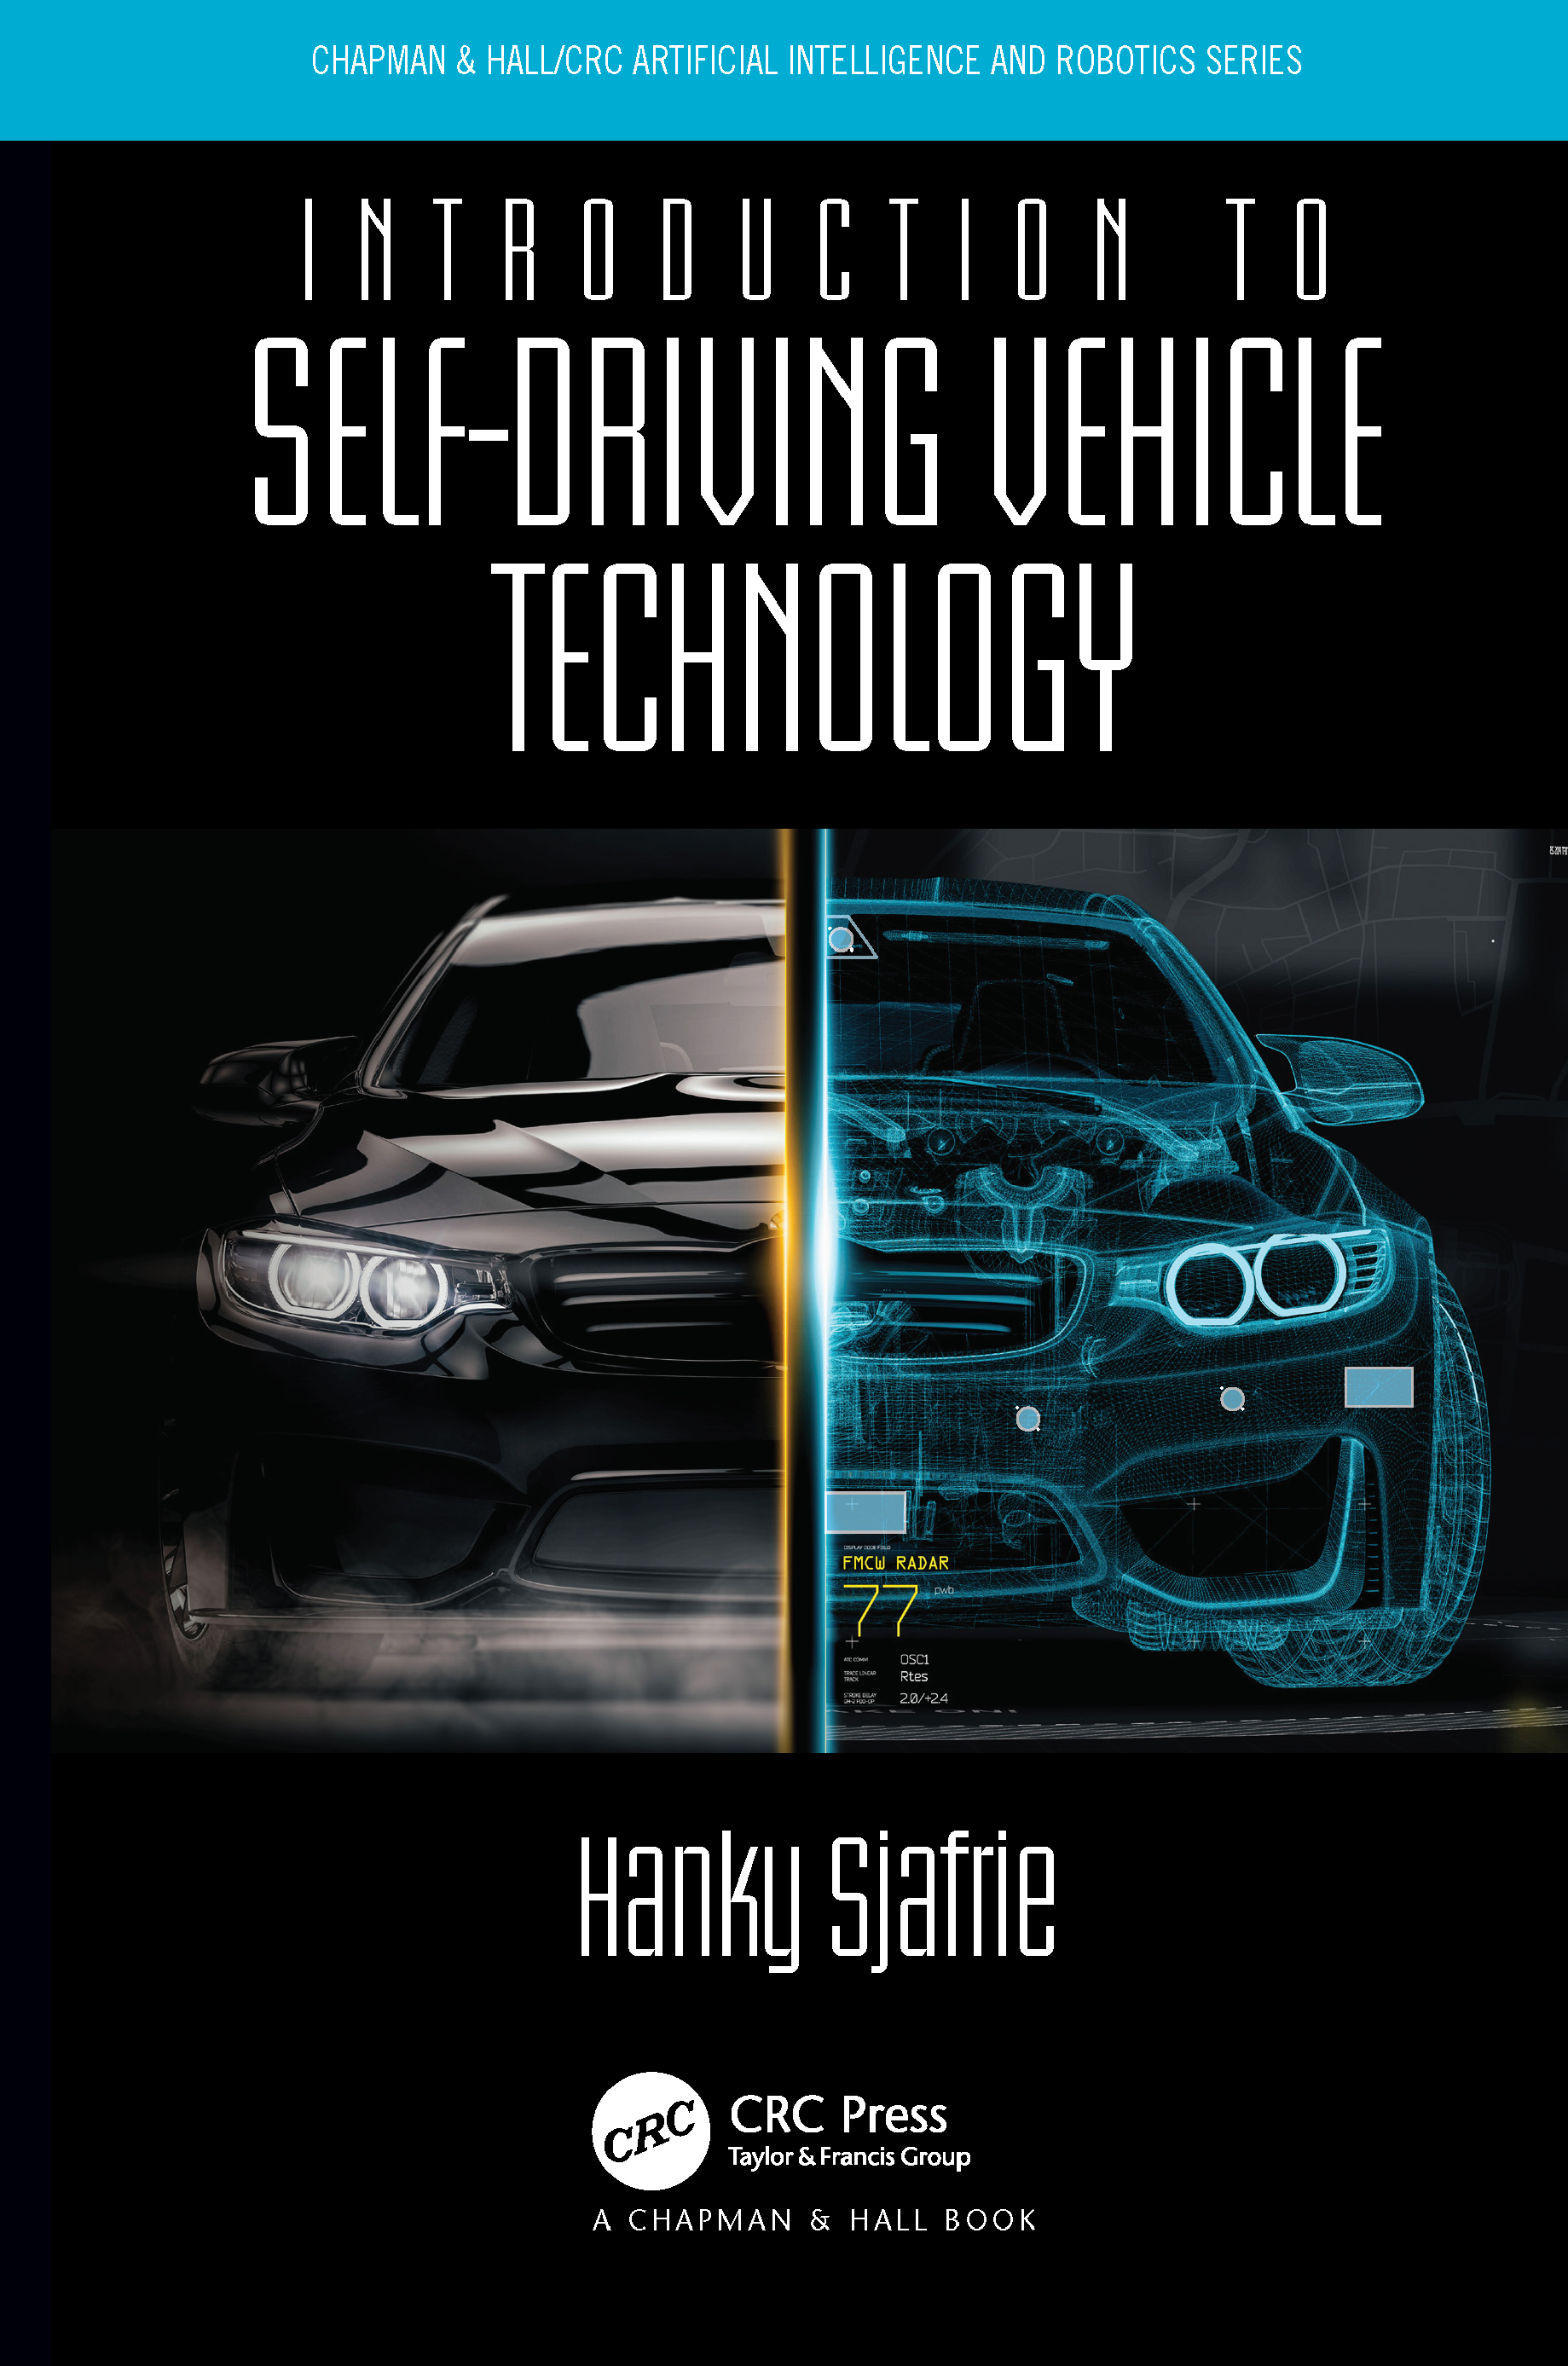 Introduction to Self-Driving Vehicle Technology